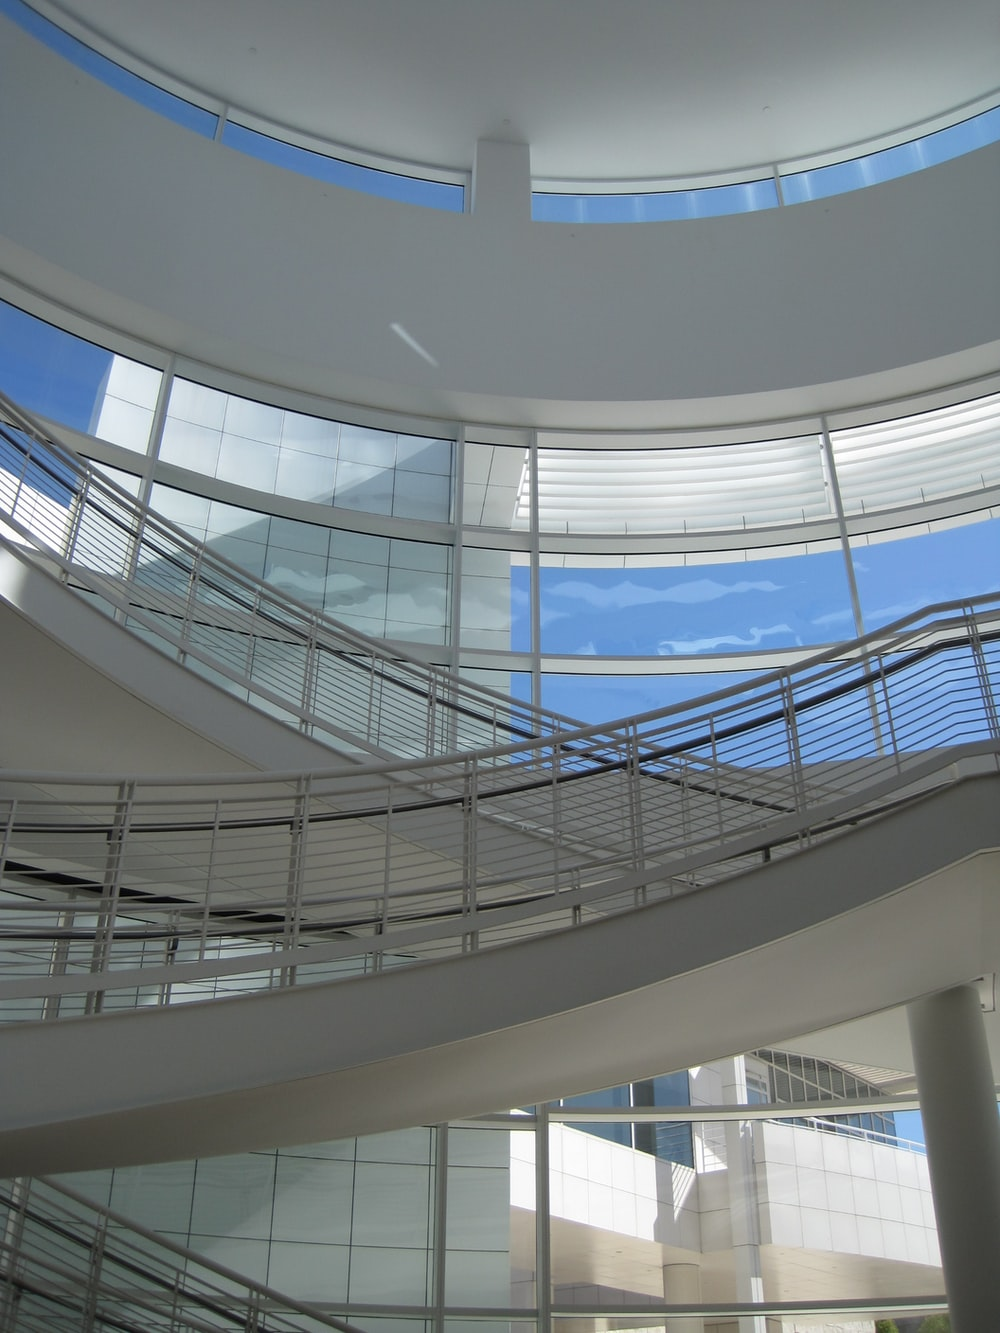 white spiral staircase with blue railings